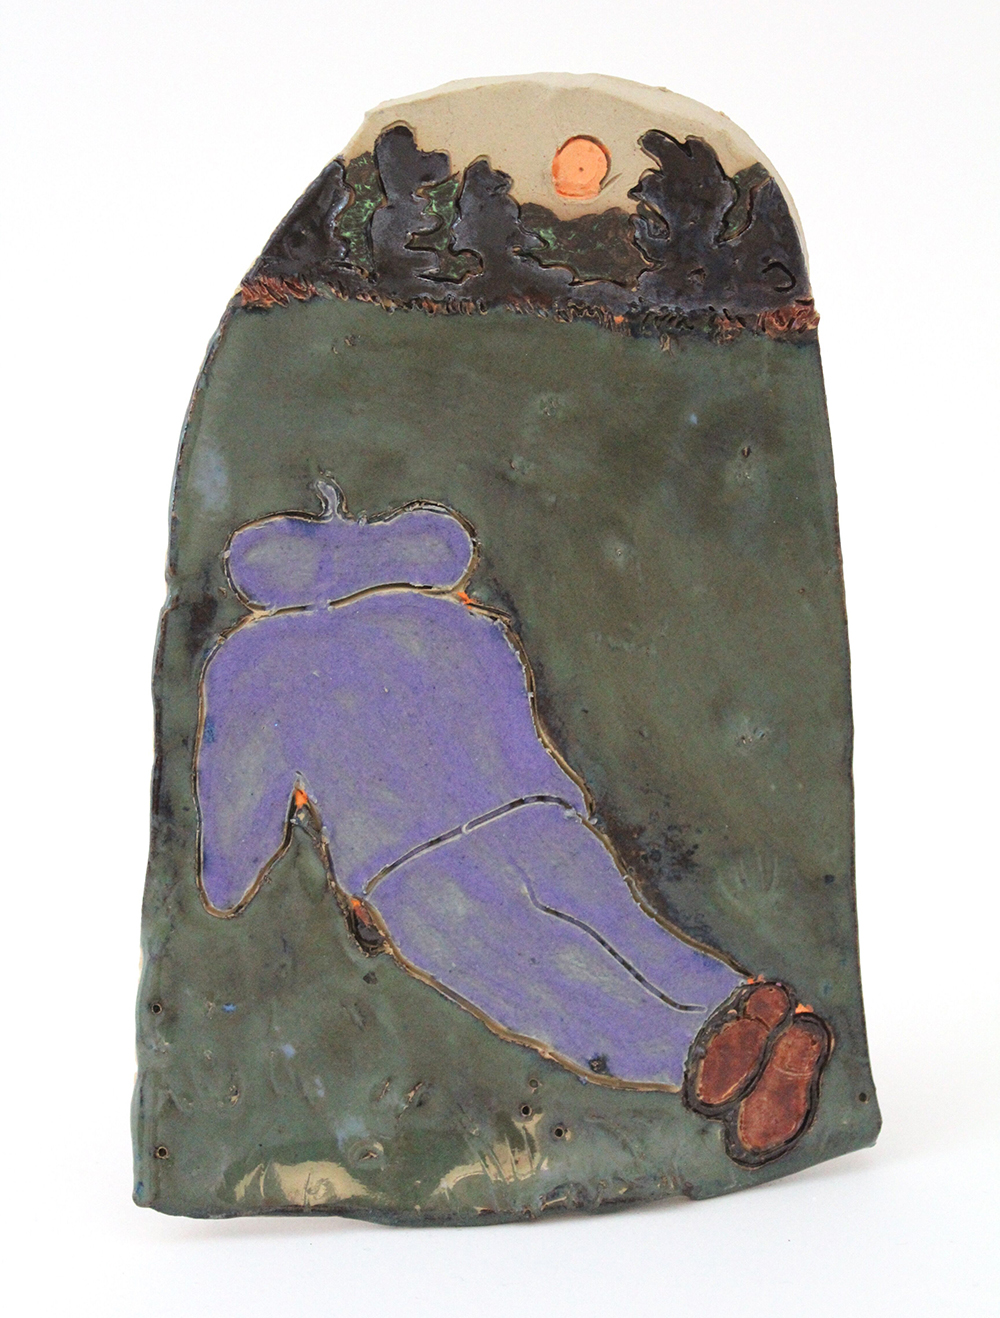 Kevin McNamee-Tweed. <em>Sunday Artist</em>, 2019. Glazed ceramic, 7 1/2 x 5 1/8 inches  (19.1 x 13 cm)